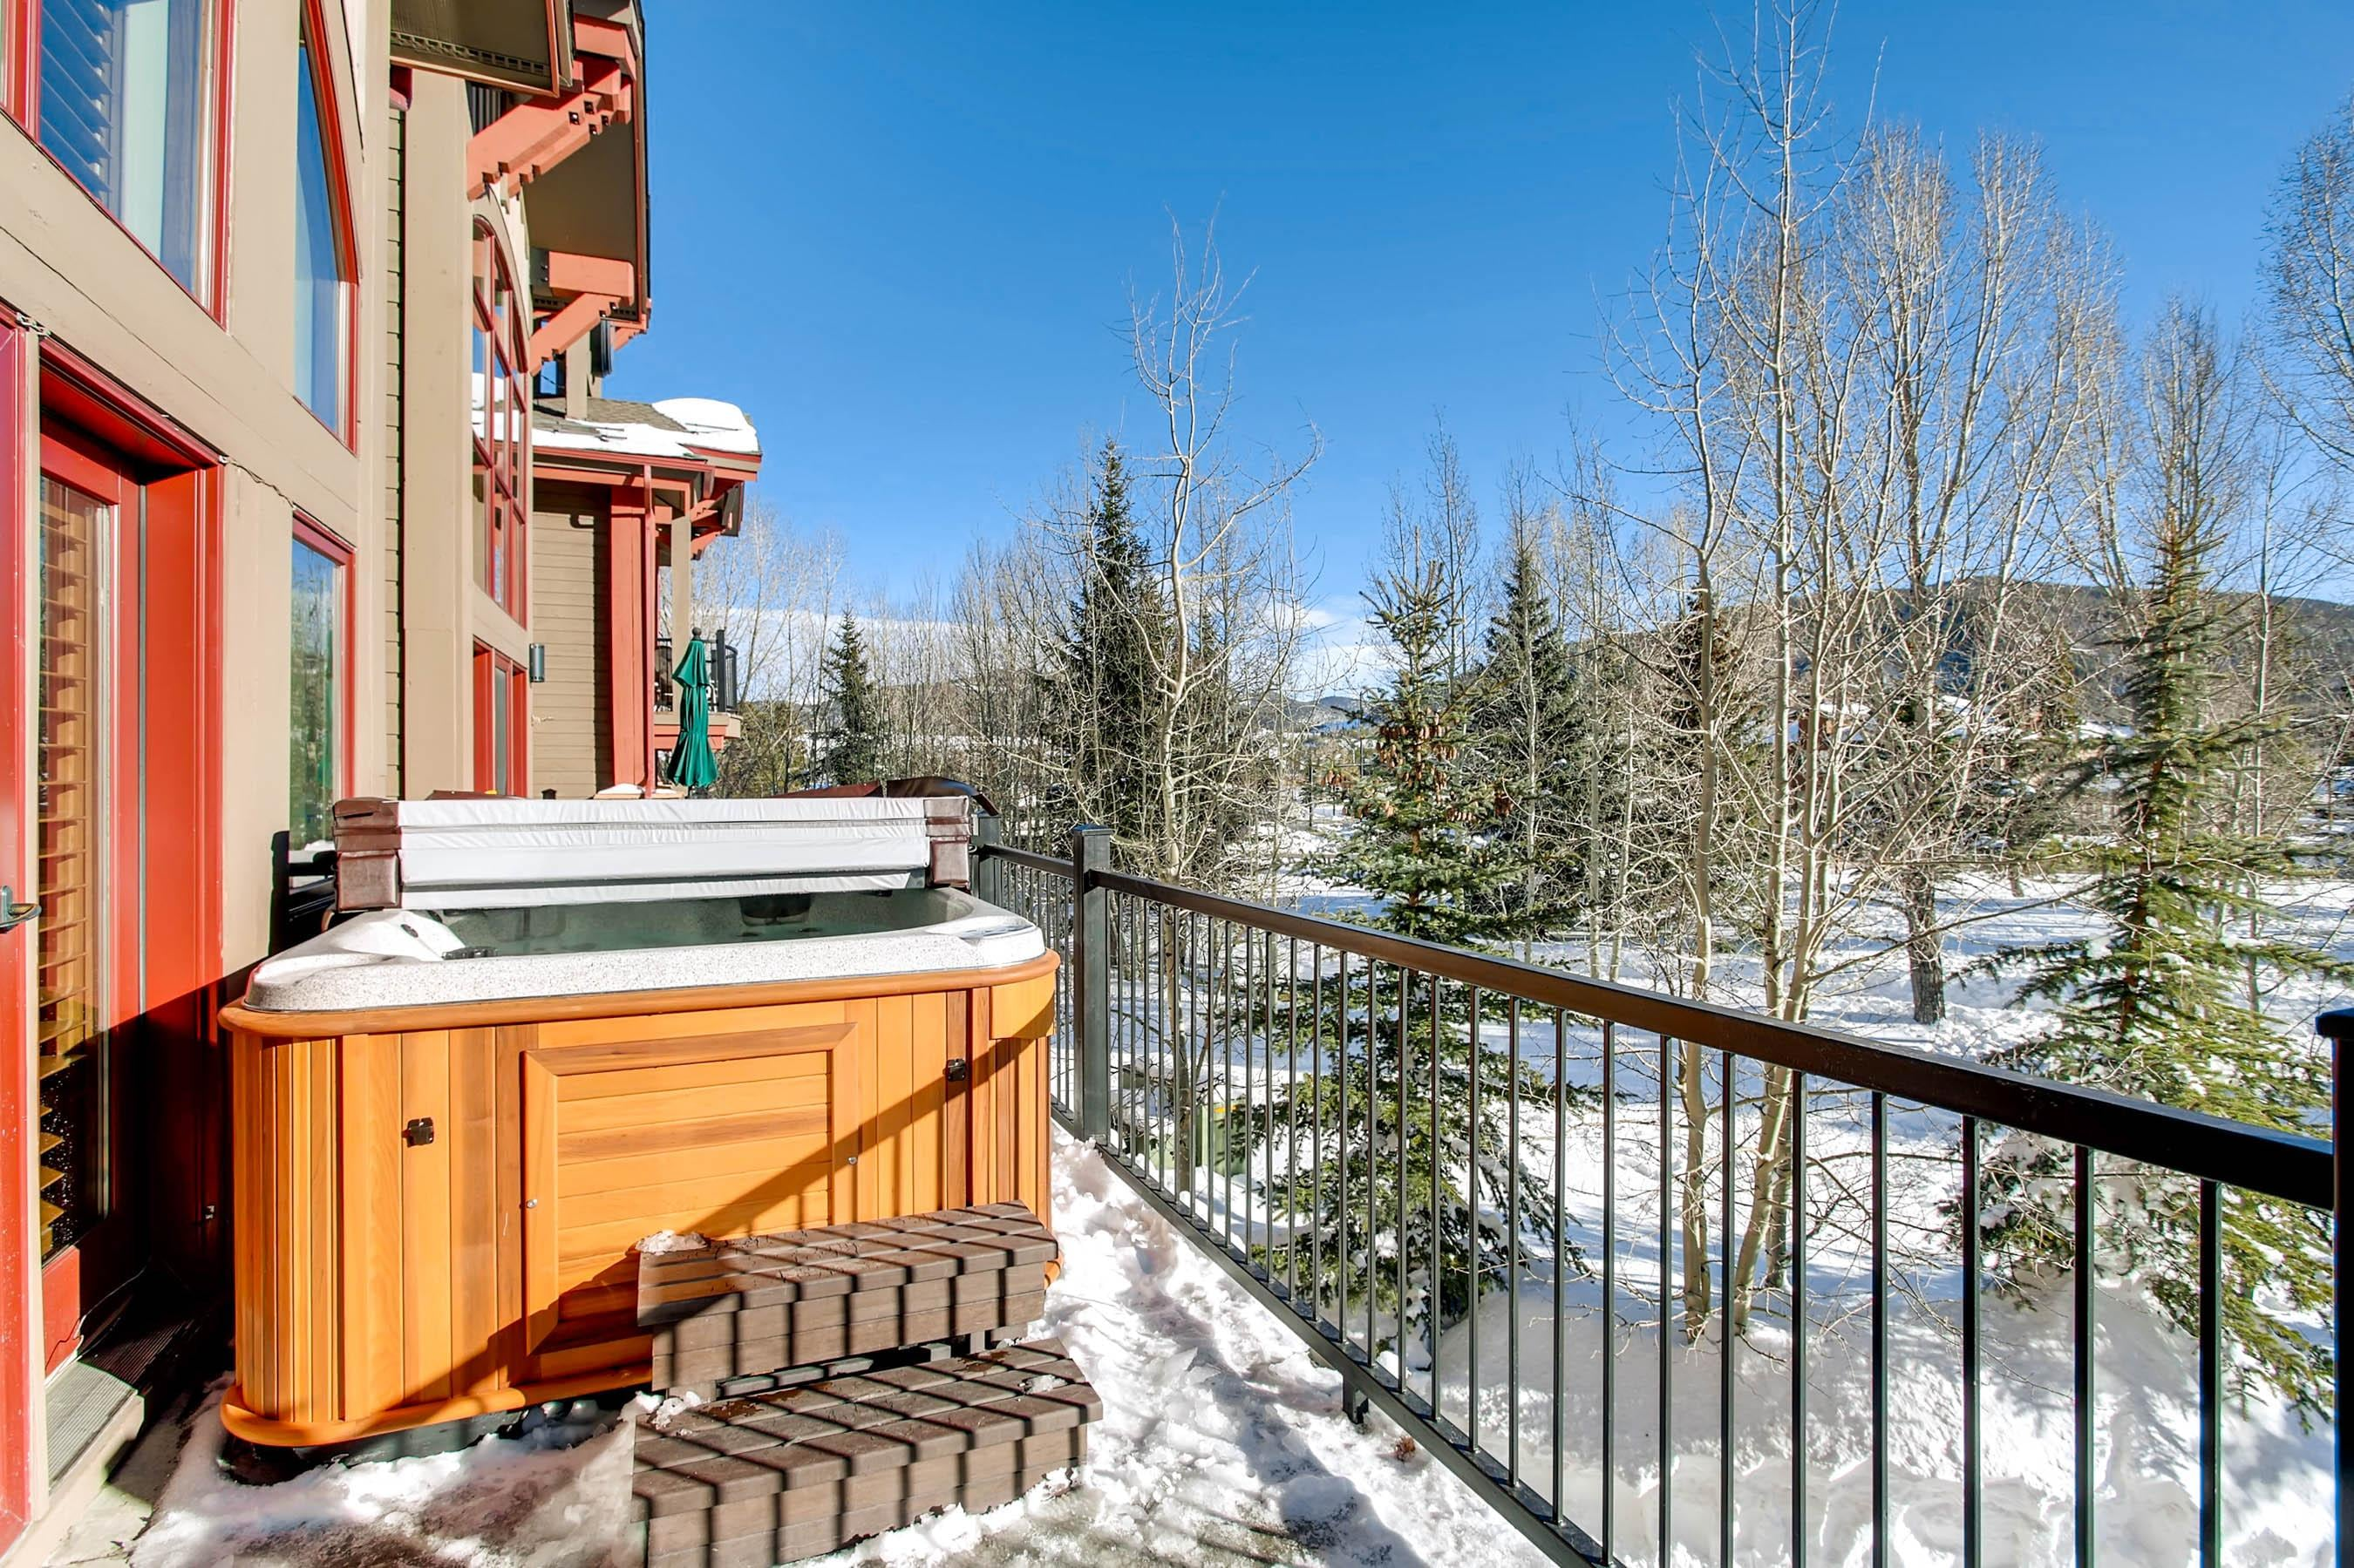 A private balcony houses a hot tub just off the living room, where you can enjoy bubbling water and mountain views